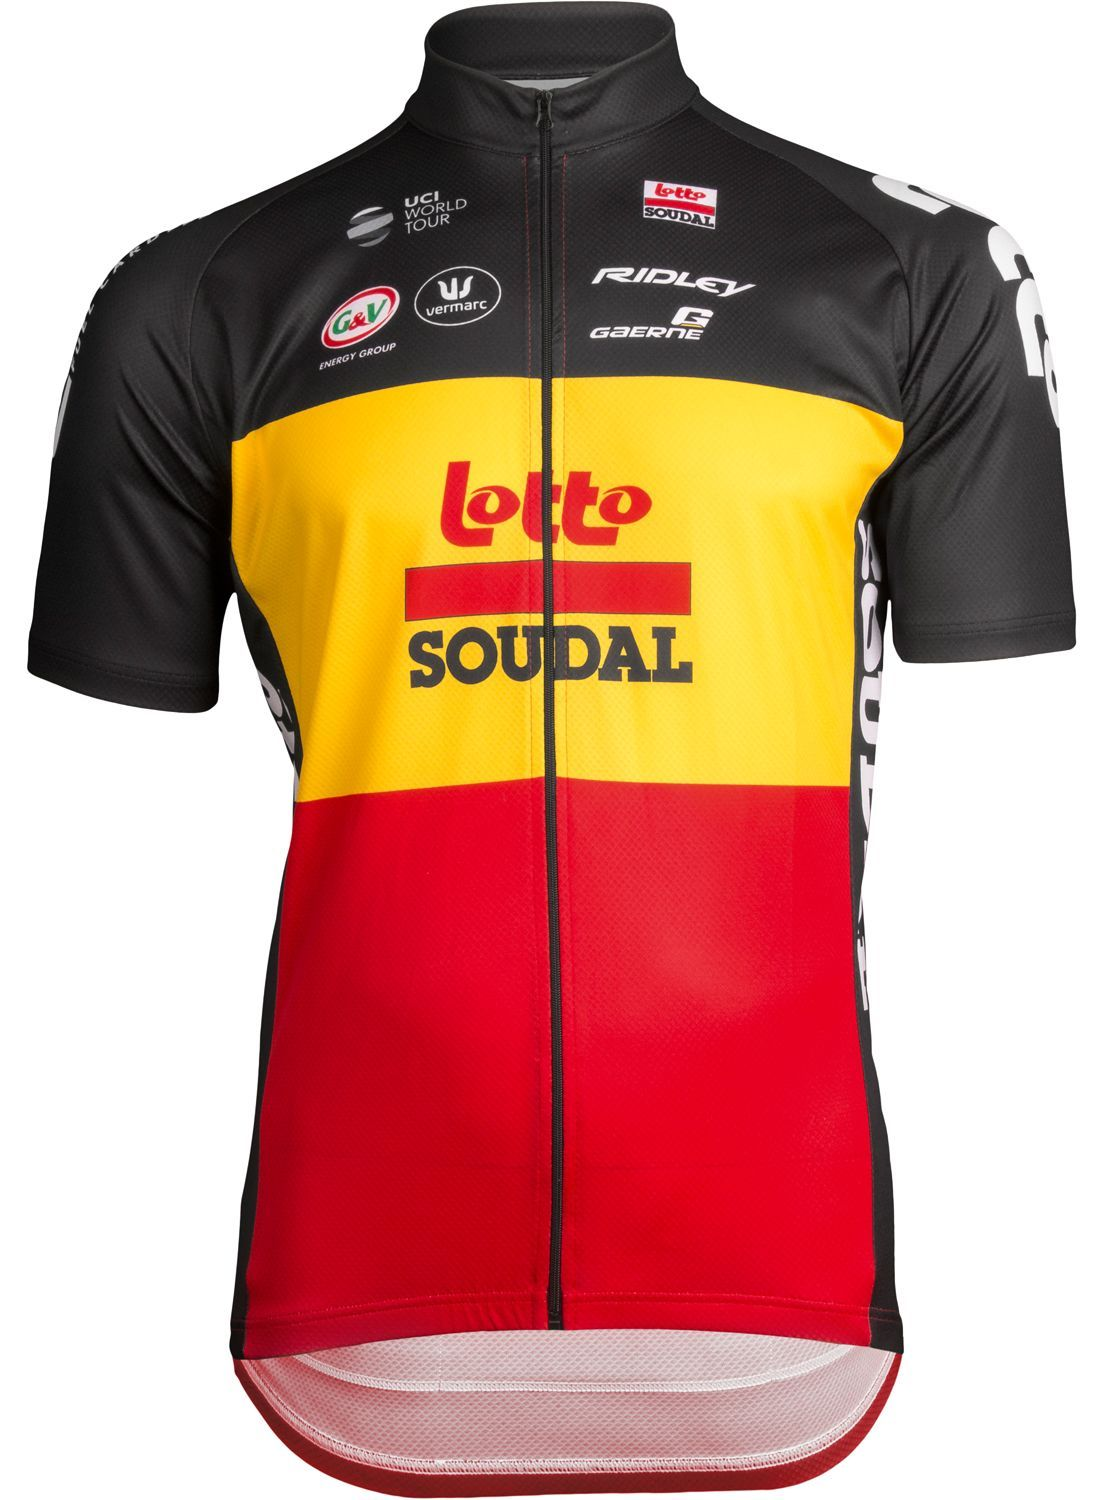 LOTTO SOUDAL belgian time trail champ 2019 short sleeve cycling jersey -  professional cycling team